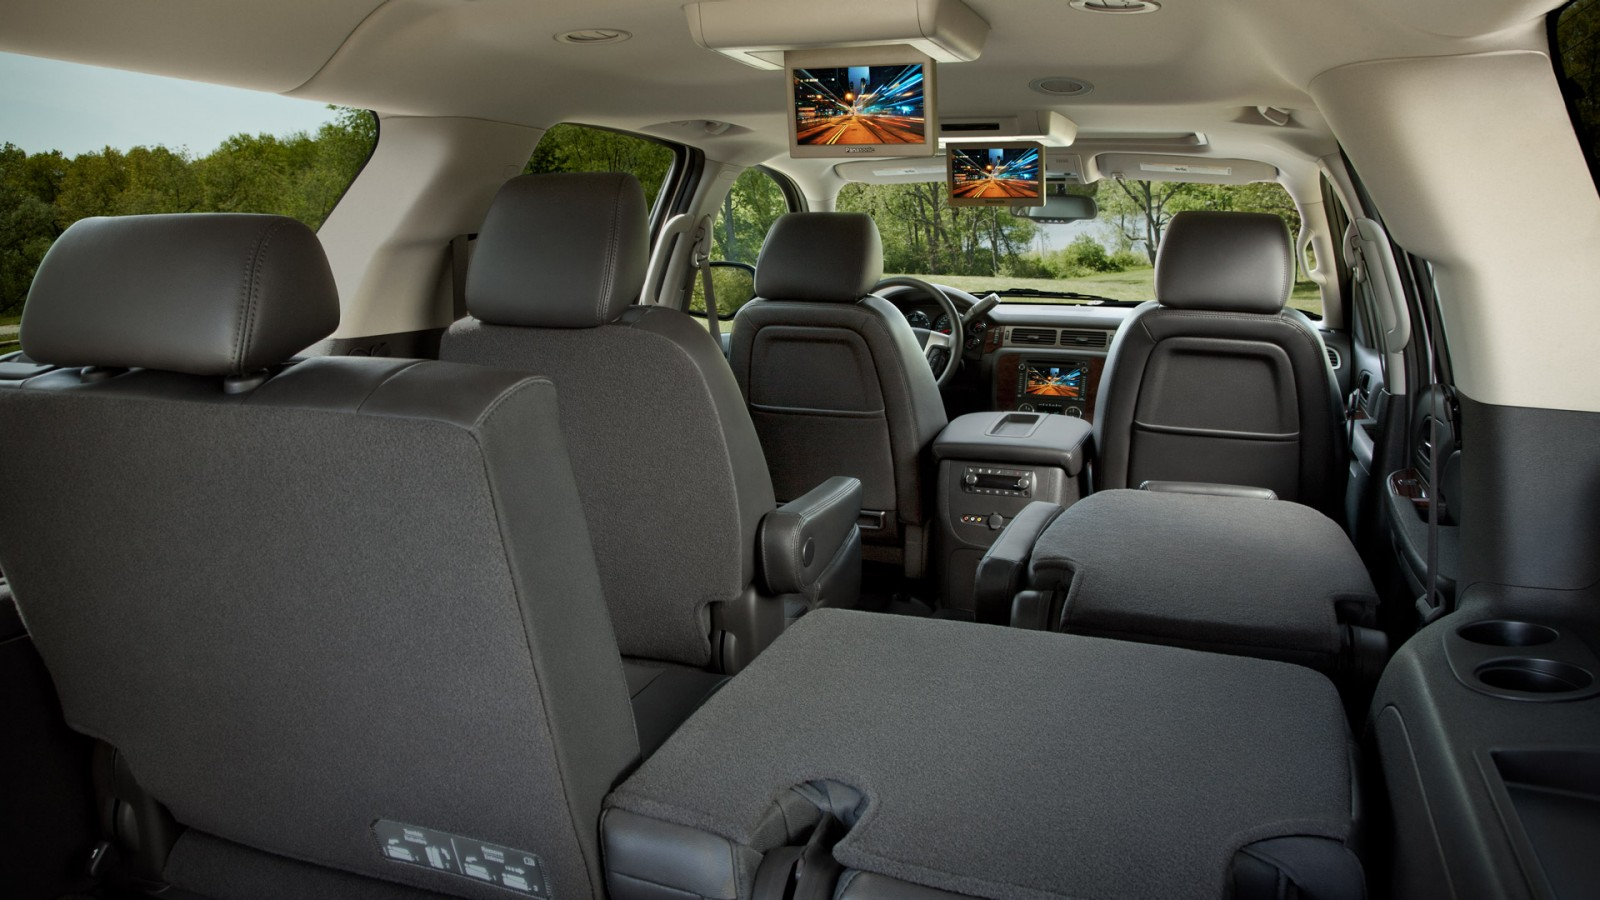 2014 chevy suburban model salem or